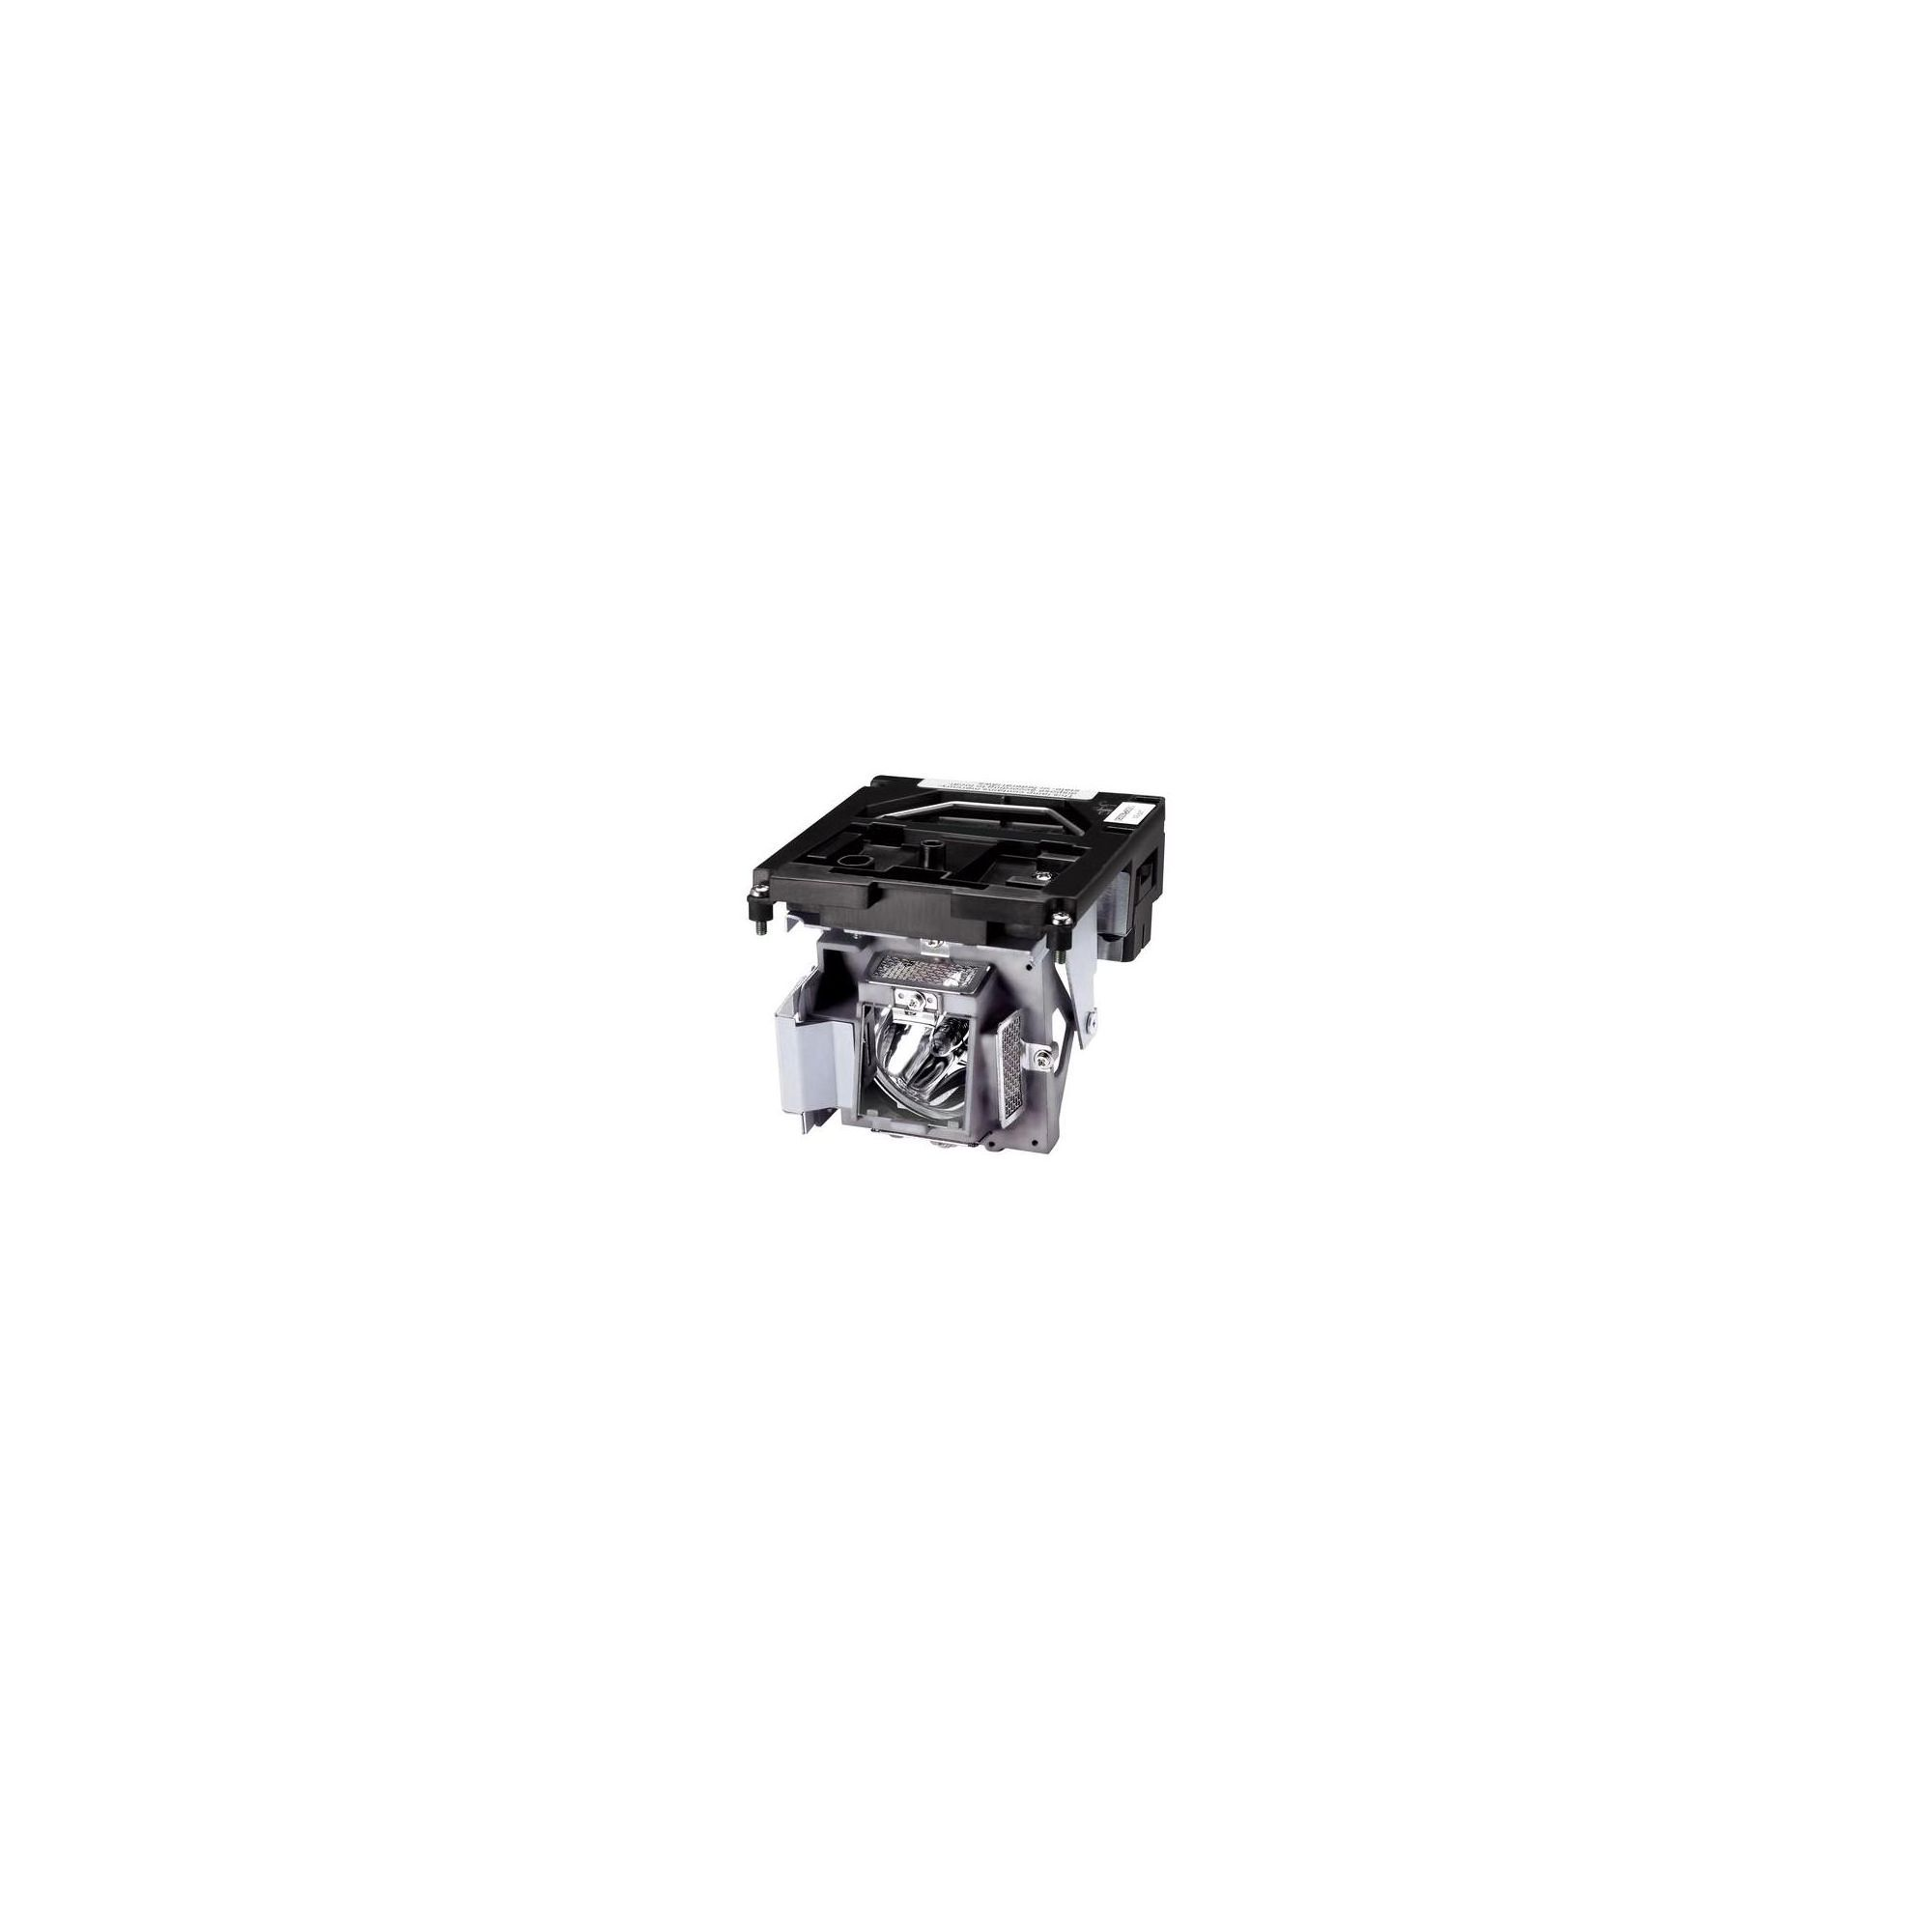 BenQ 280W Replacement Projector Lamp for MP724 Projector at Tesco Direct